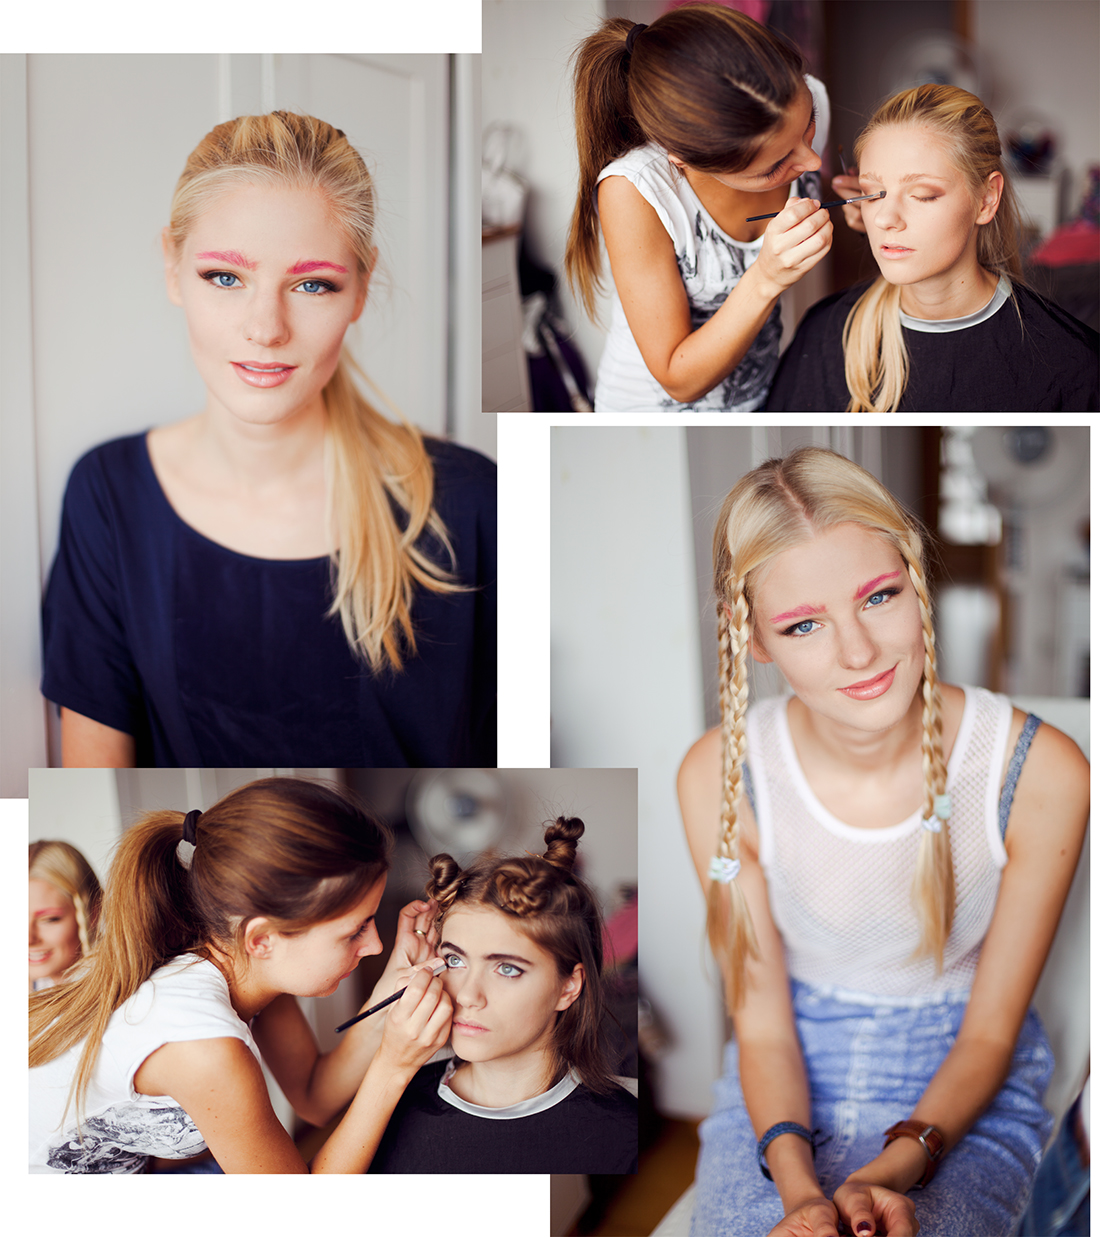 Fashion photoshoot behind the scenes make up application by London based photographer Ailera Stone.